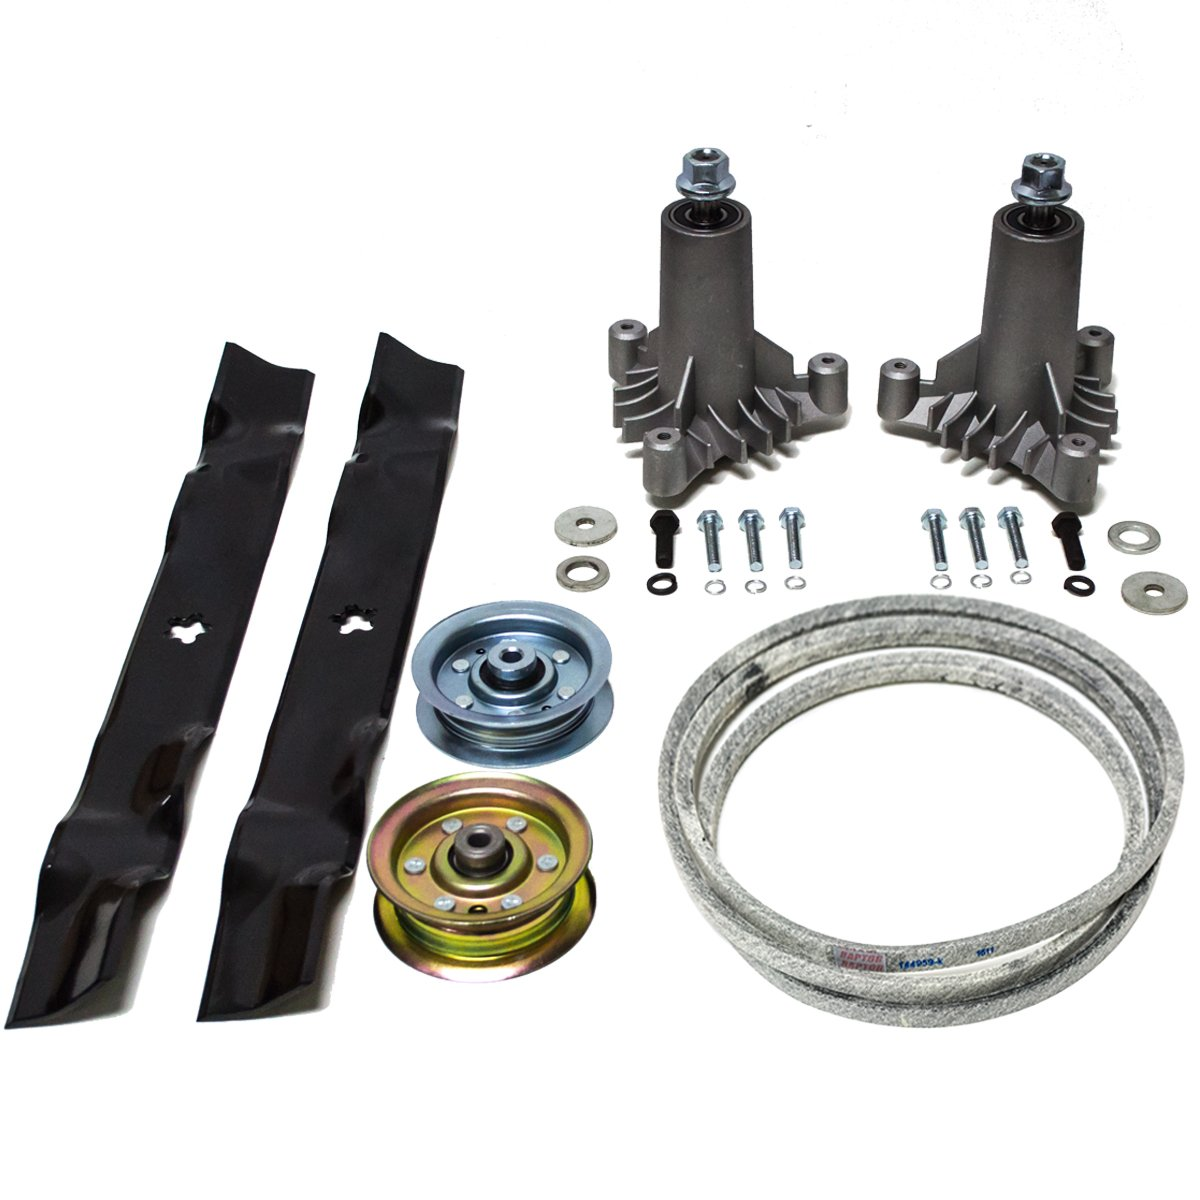 42'' Sears Craftsman LT1000 LT2000 LT3000 Rebuild Kit 144959 130794 134149 173437 Belt Made with Kevlar, Oregon Blades